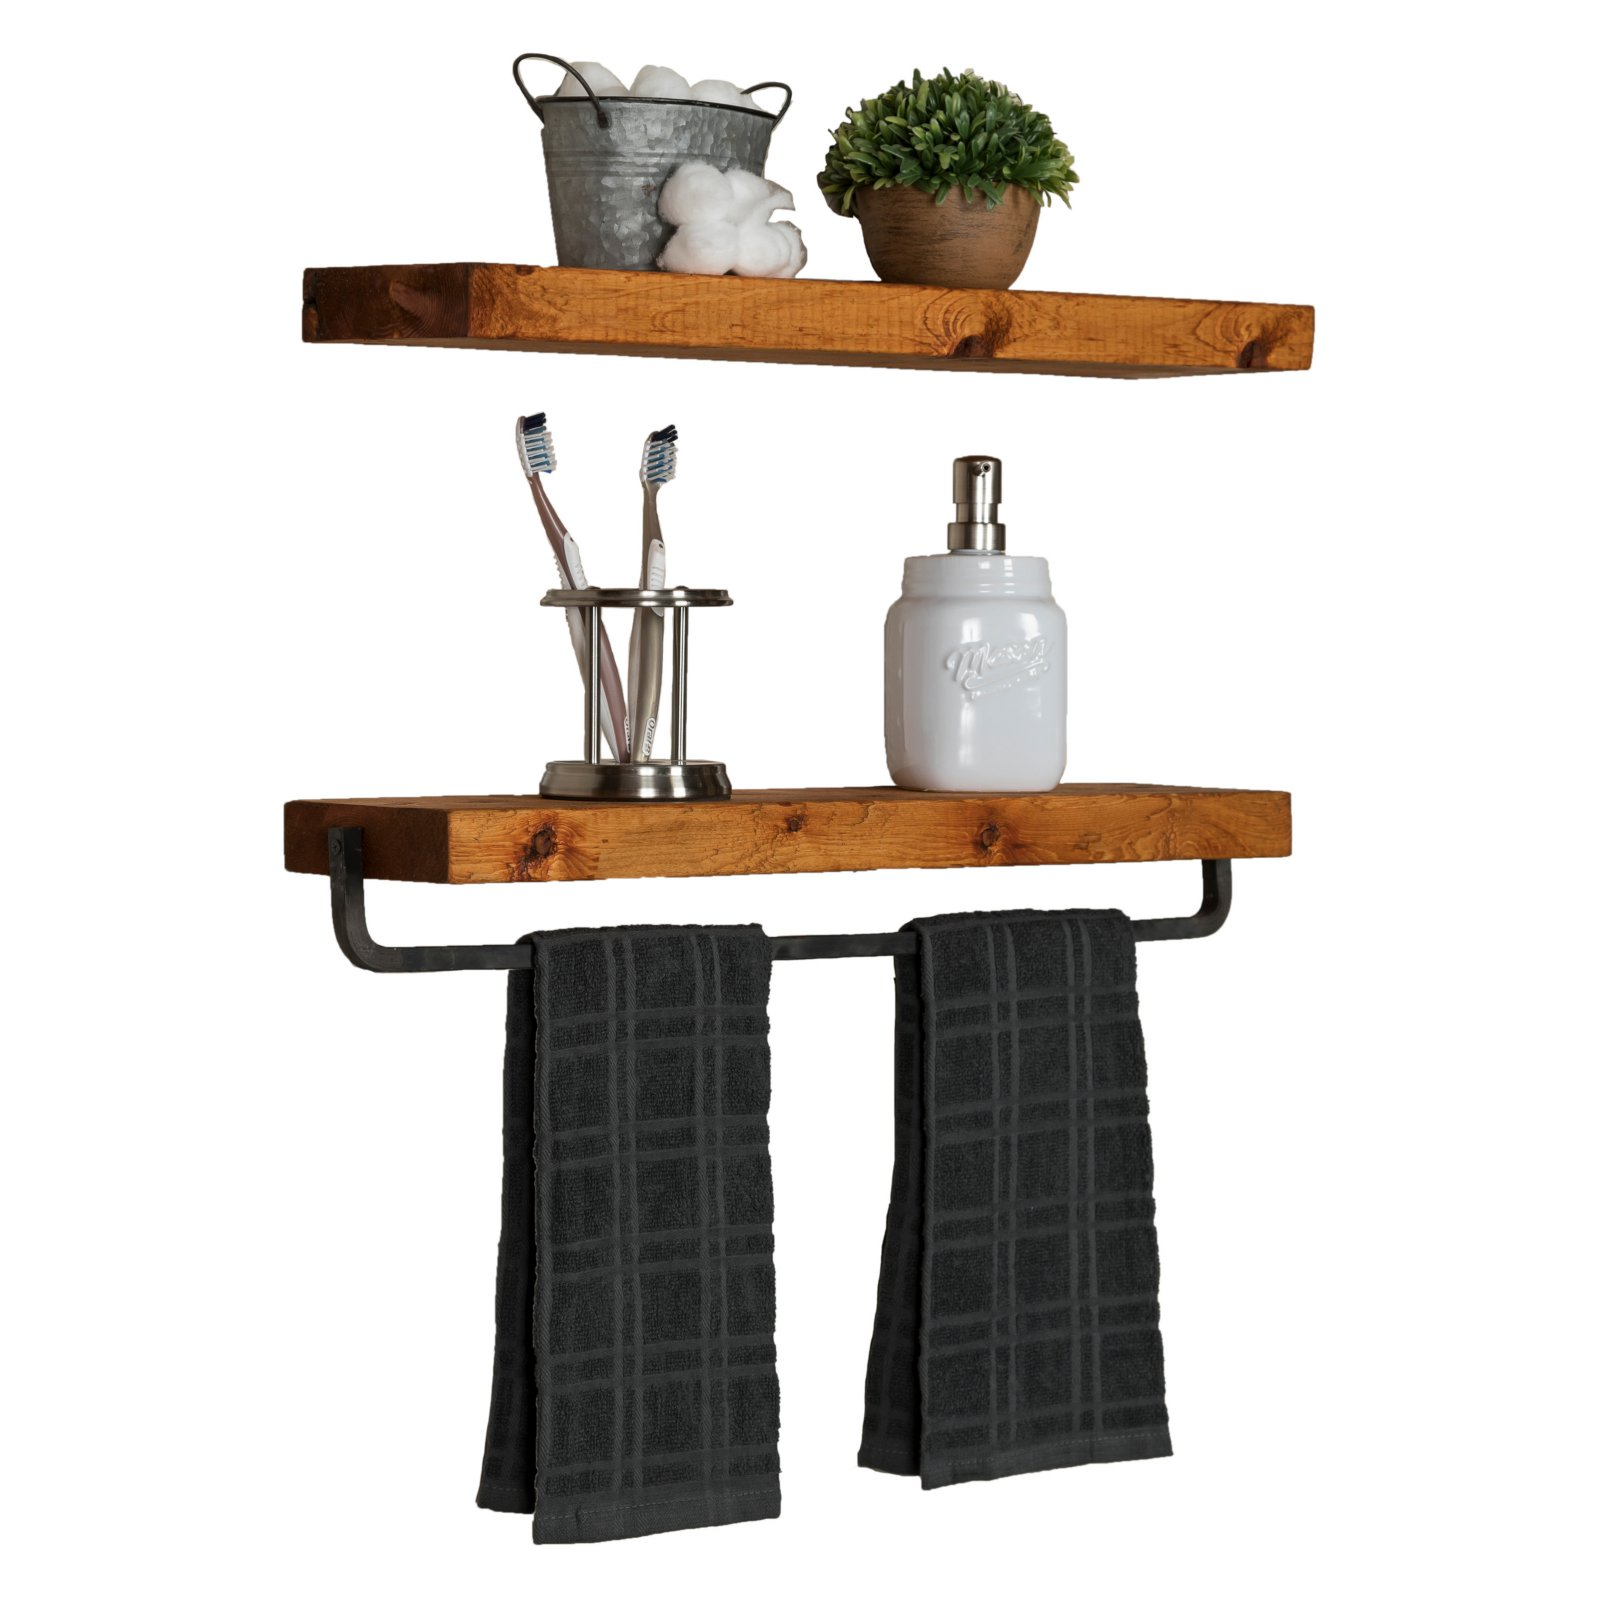 del hutson true floating shelf with towel bar set detail shelves for drywall without studs cube wall unit small glass corner desk danish armchair dish storage shelving units